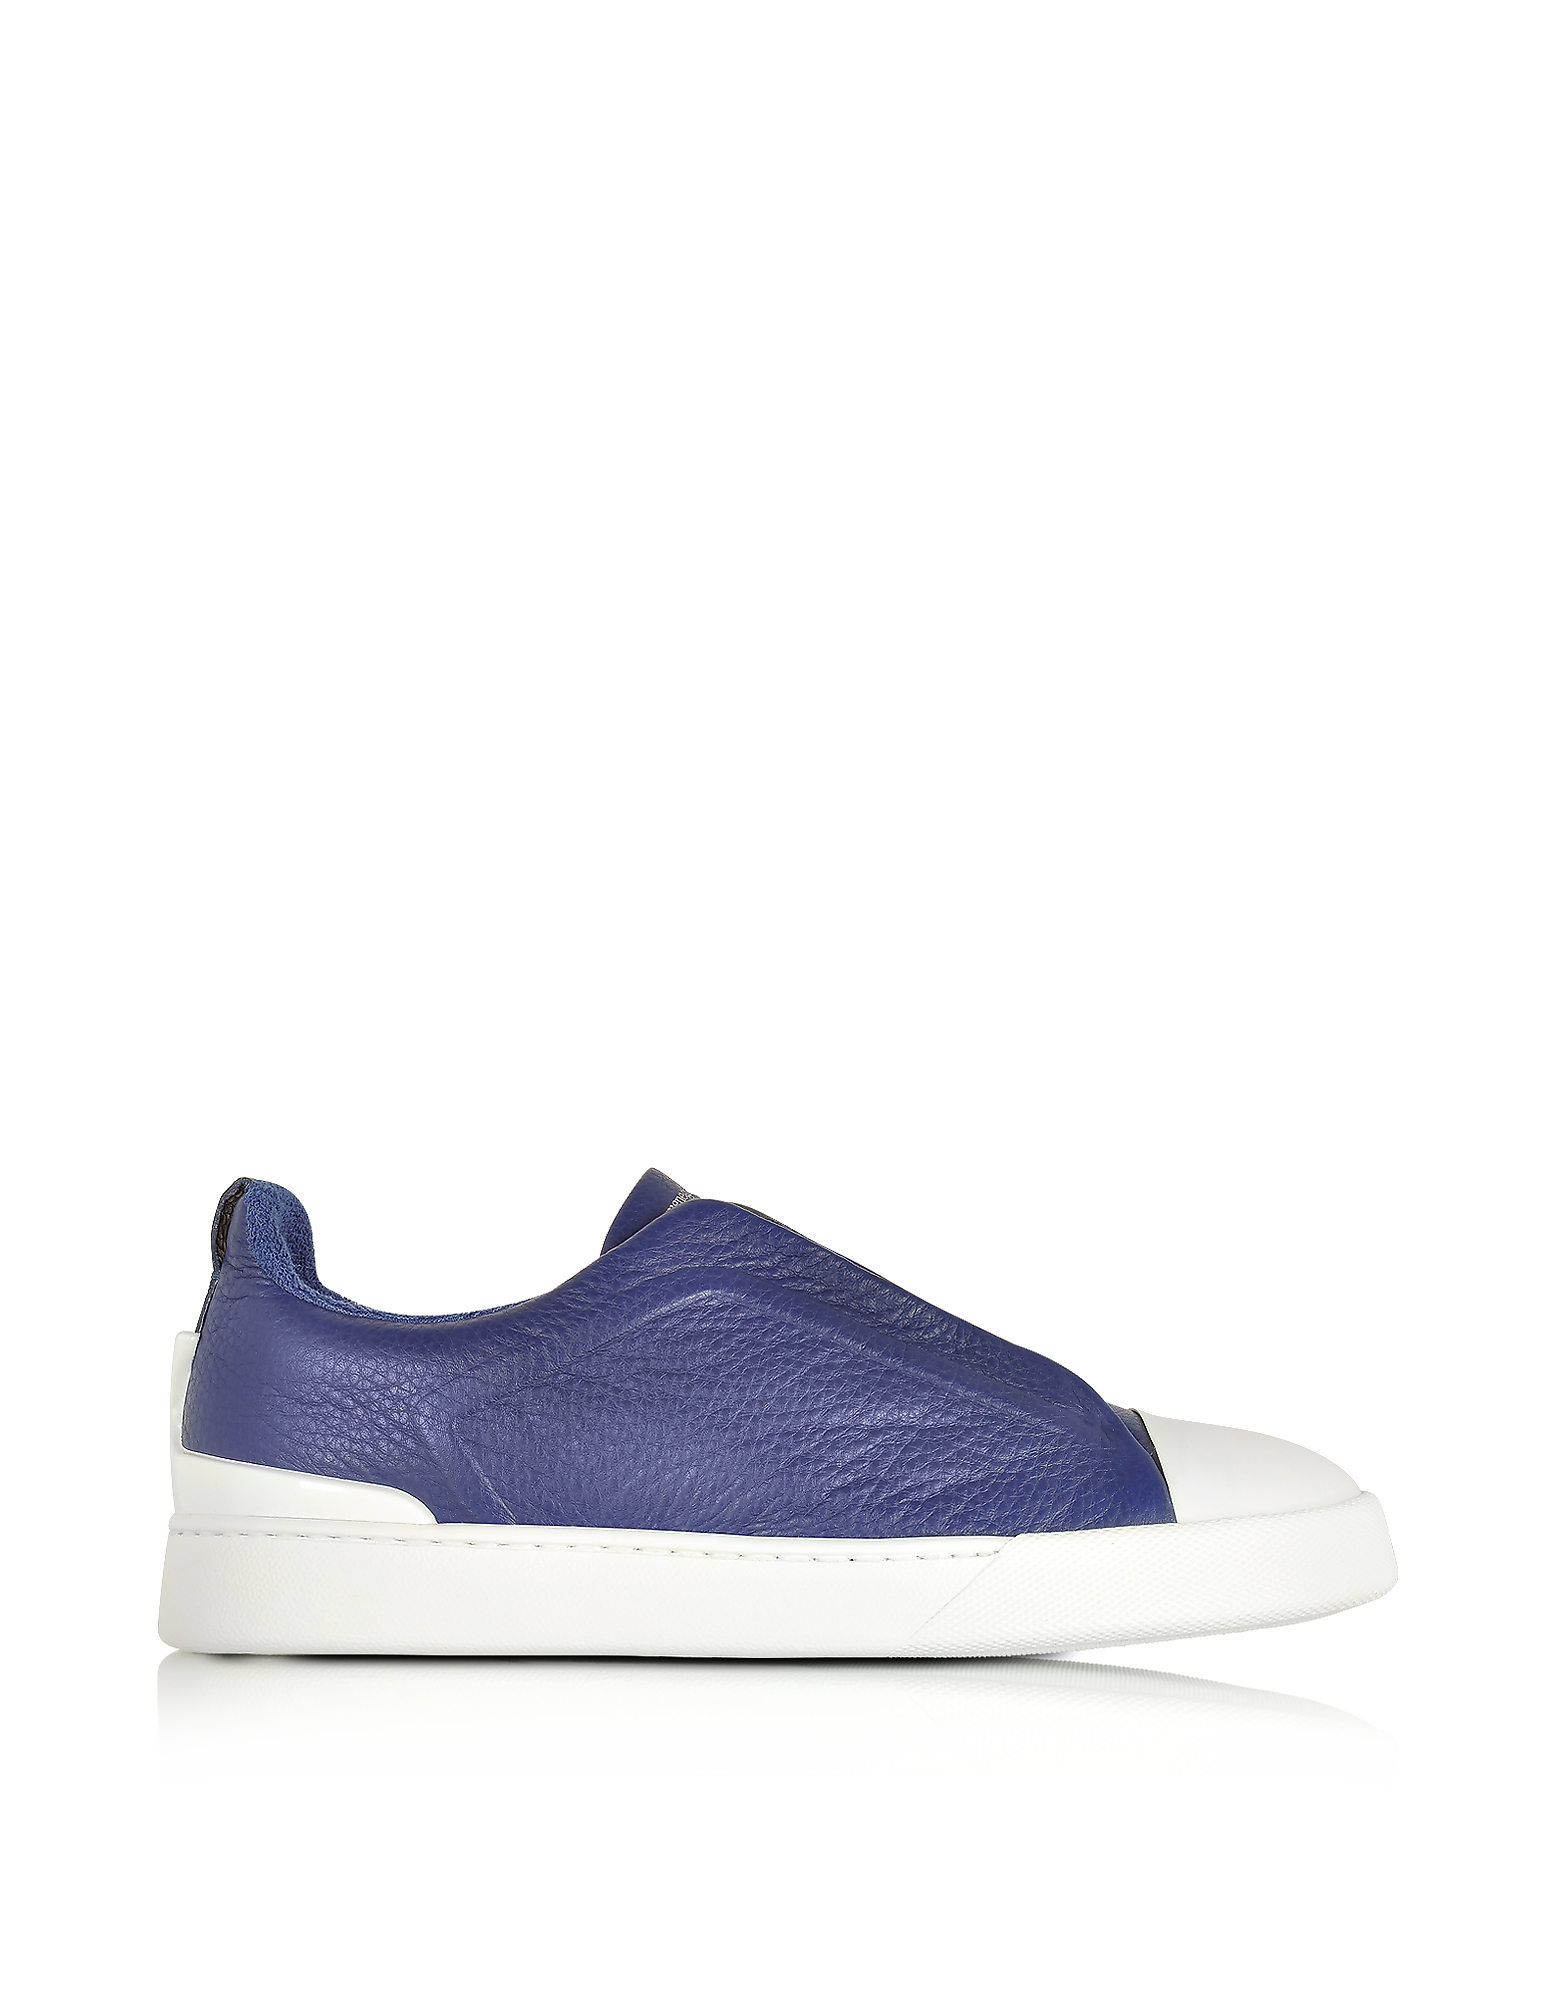 Ermenegildo Zegna Shoes, Electric Blue Grained Triple Stitch Sneakers